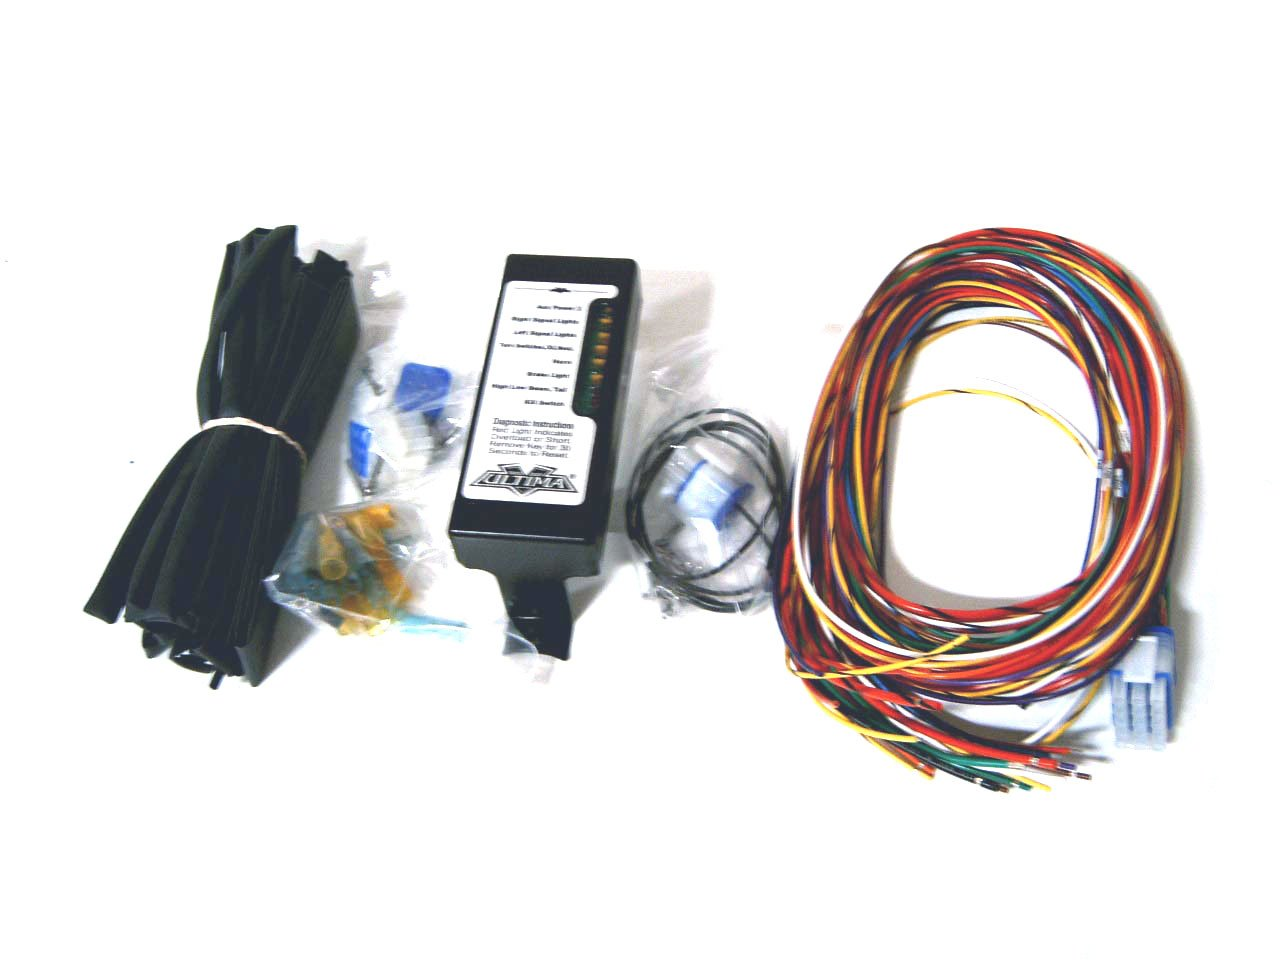 61DV2Bq5%2BHL._SL1280_ amazon com ultima complete wiring harness kit for harley davidson universal wiring harness kits at creativeand.co